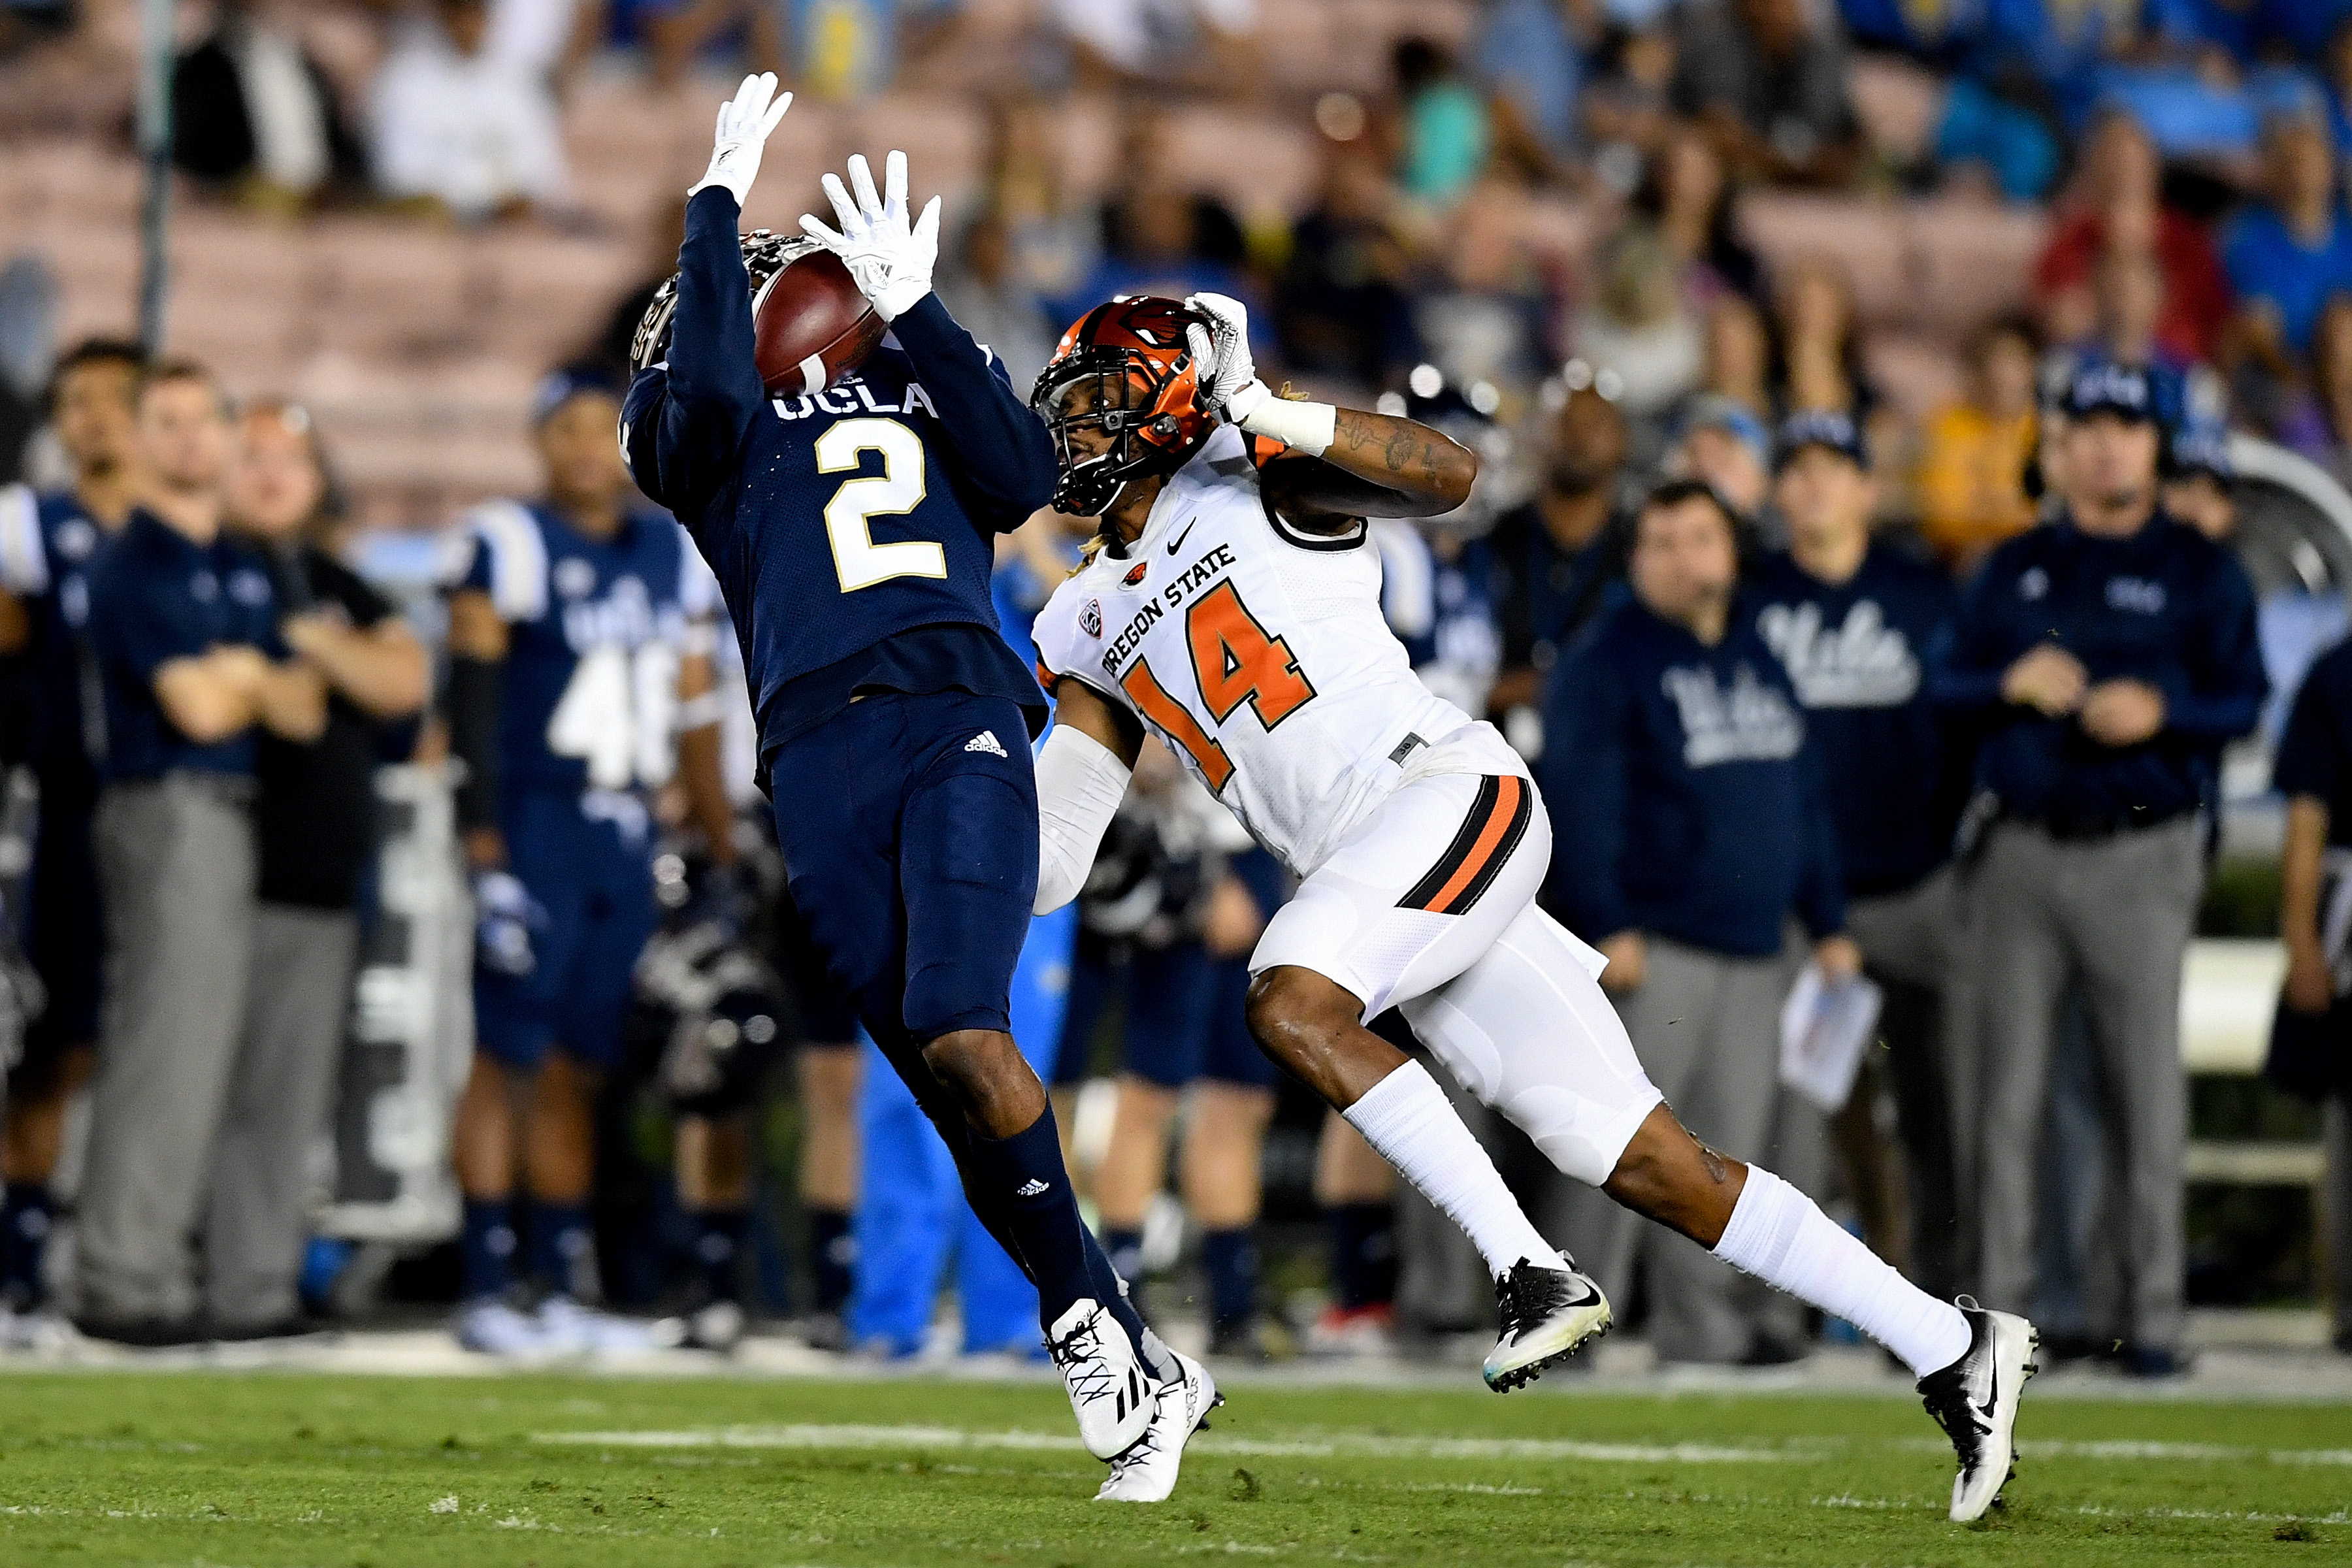 This big play by Jordan Lasley led to UCLA's first touchdown of the night.